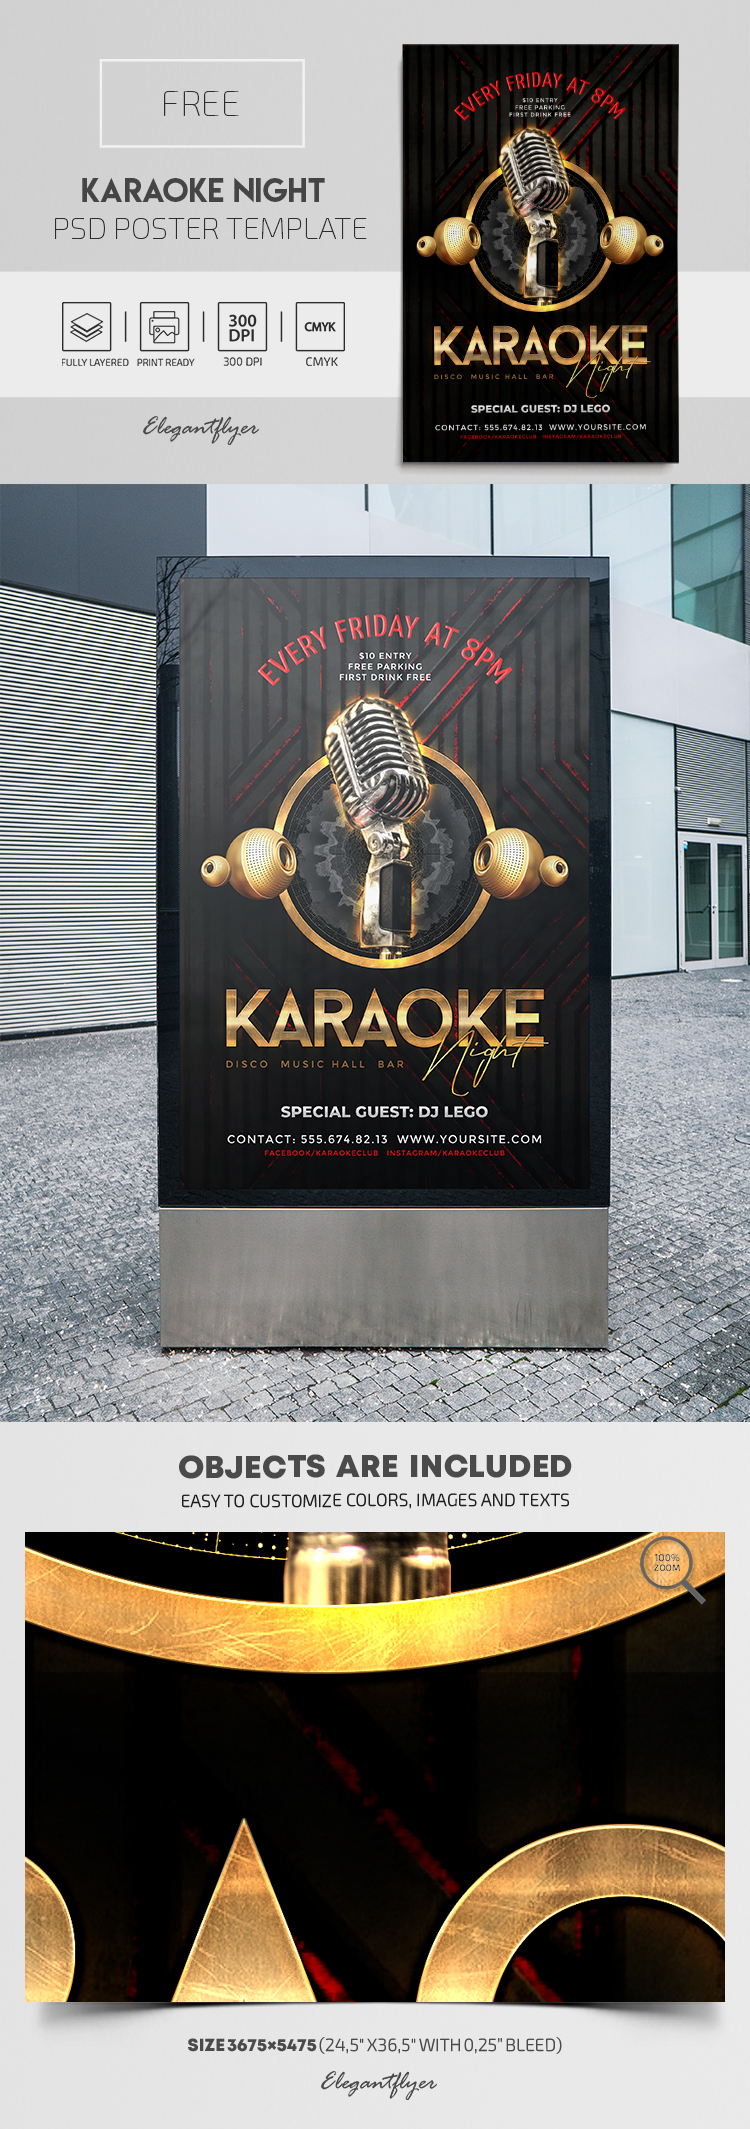 Karaoke Night – Free PSD Poster Template